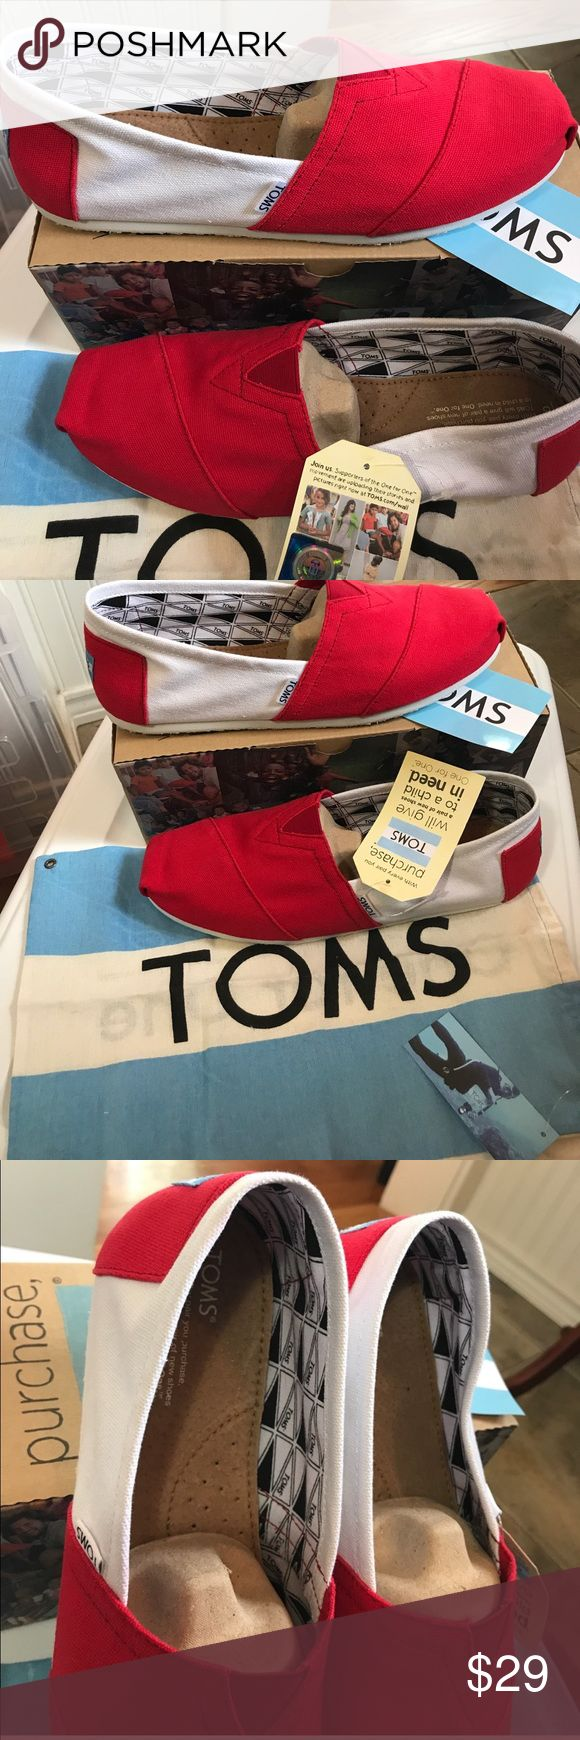 Toms classics canvas University of Oklahoma 9.5 Classics Red and White very summery and crisp. New in box 📦  Light weight canvas slipons, the shoe that made TOMS famous! University of Oklahoma or other schools with Red and White TOMS Shoes Loafers & Slip-Ons